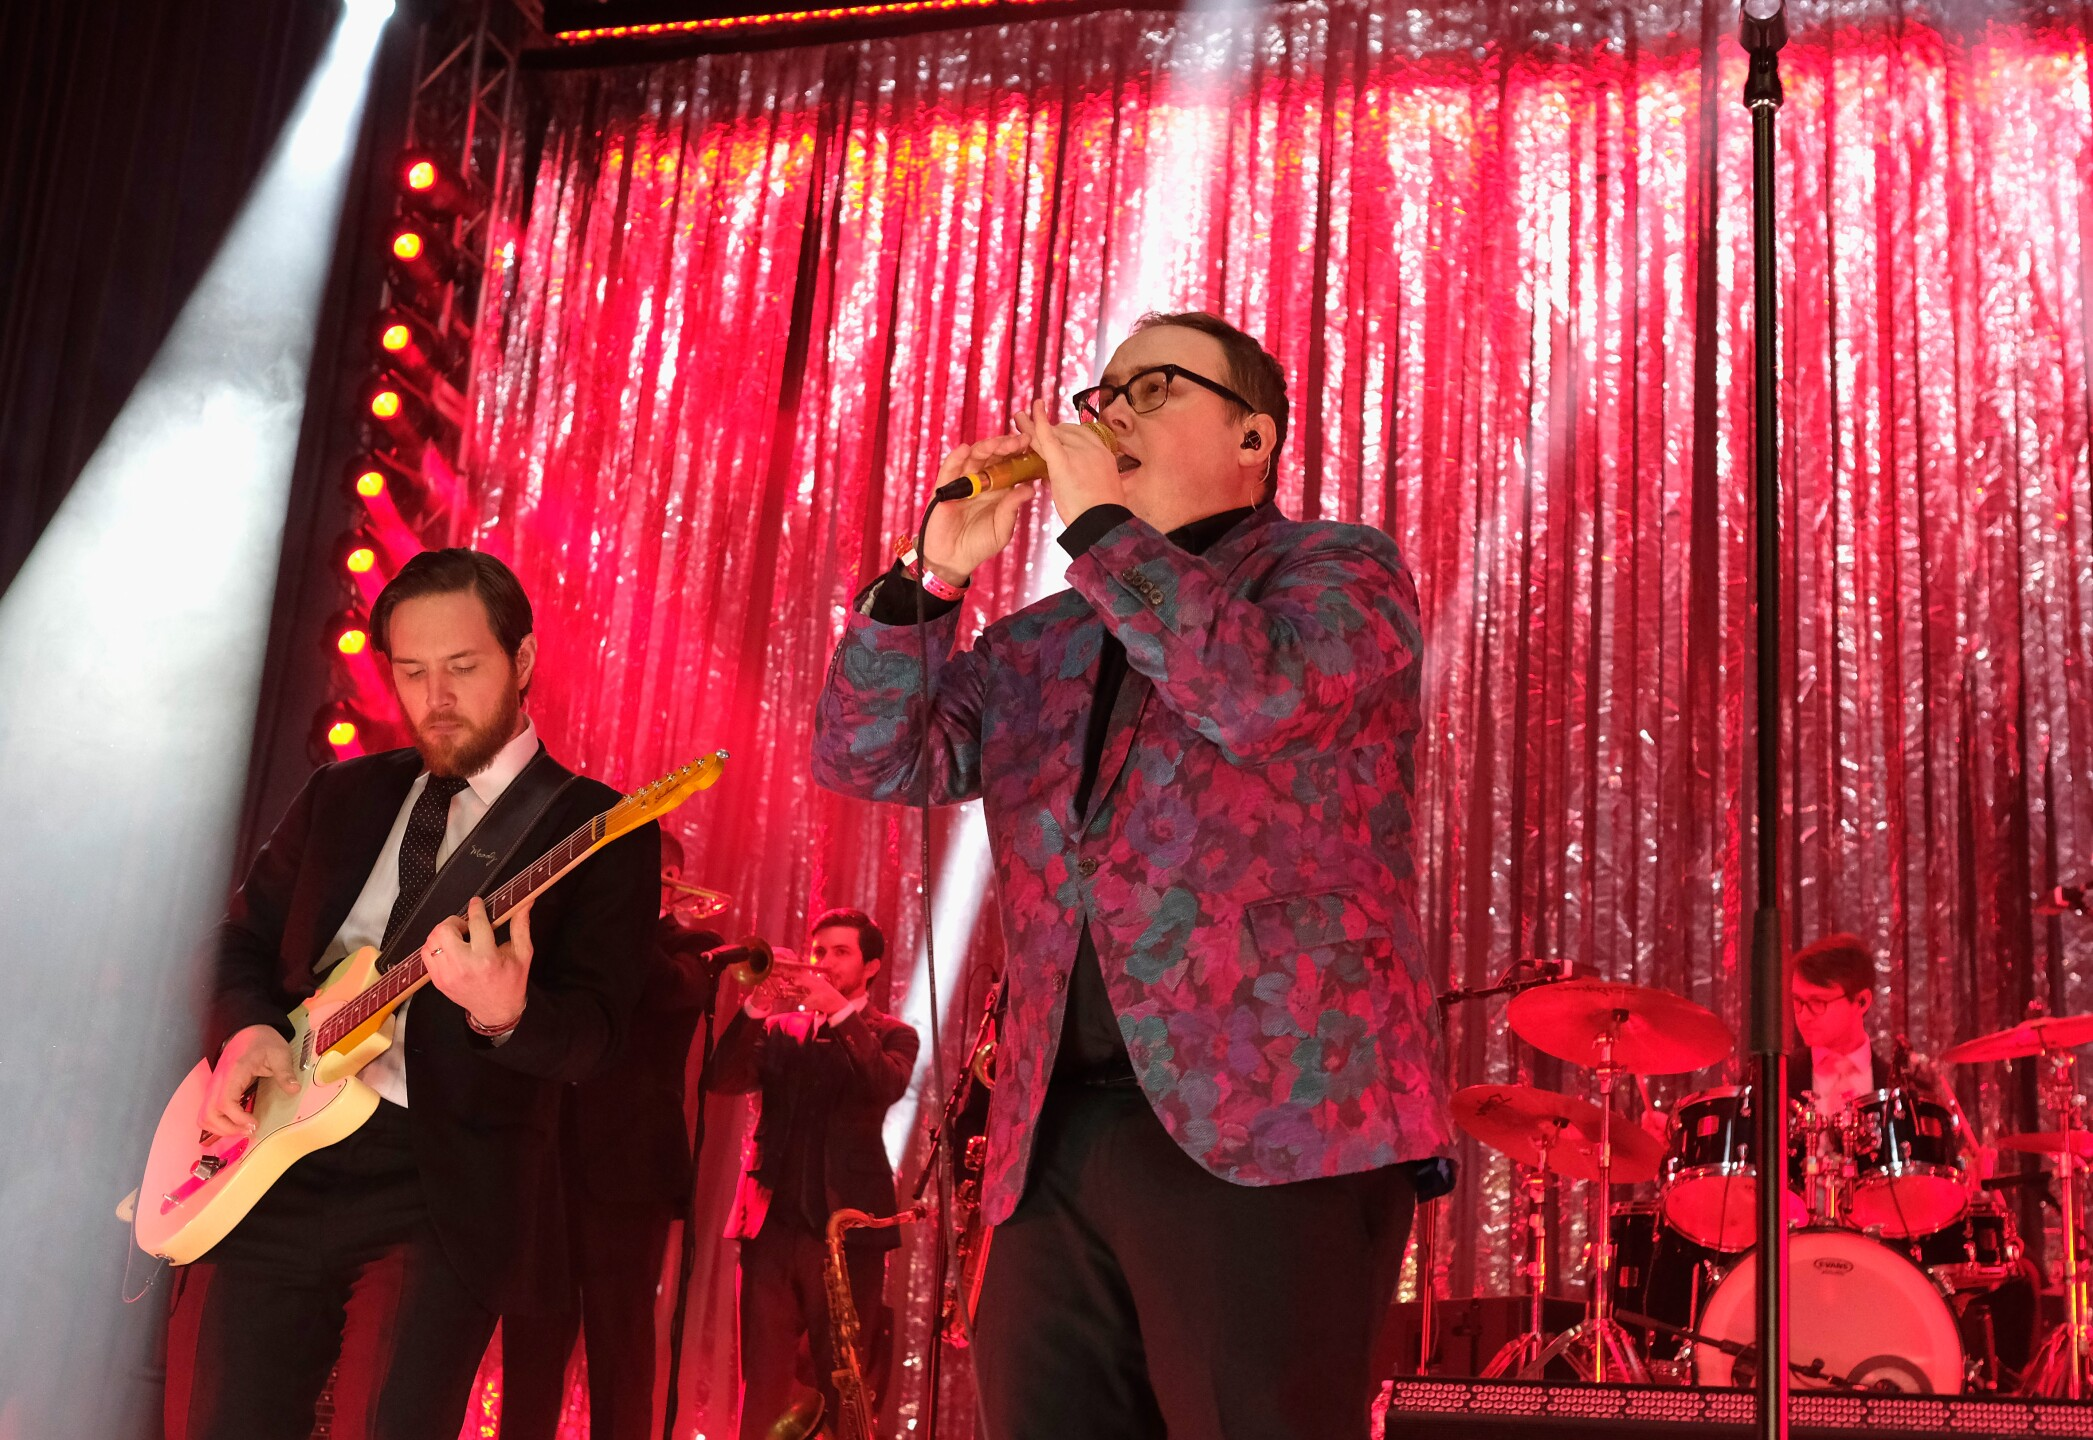 St. Paul and The Broken Bones to perform at Summerfest 2019.